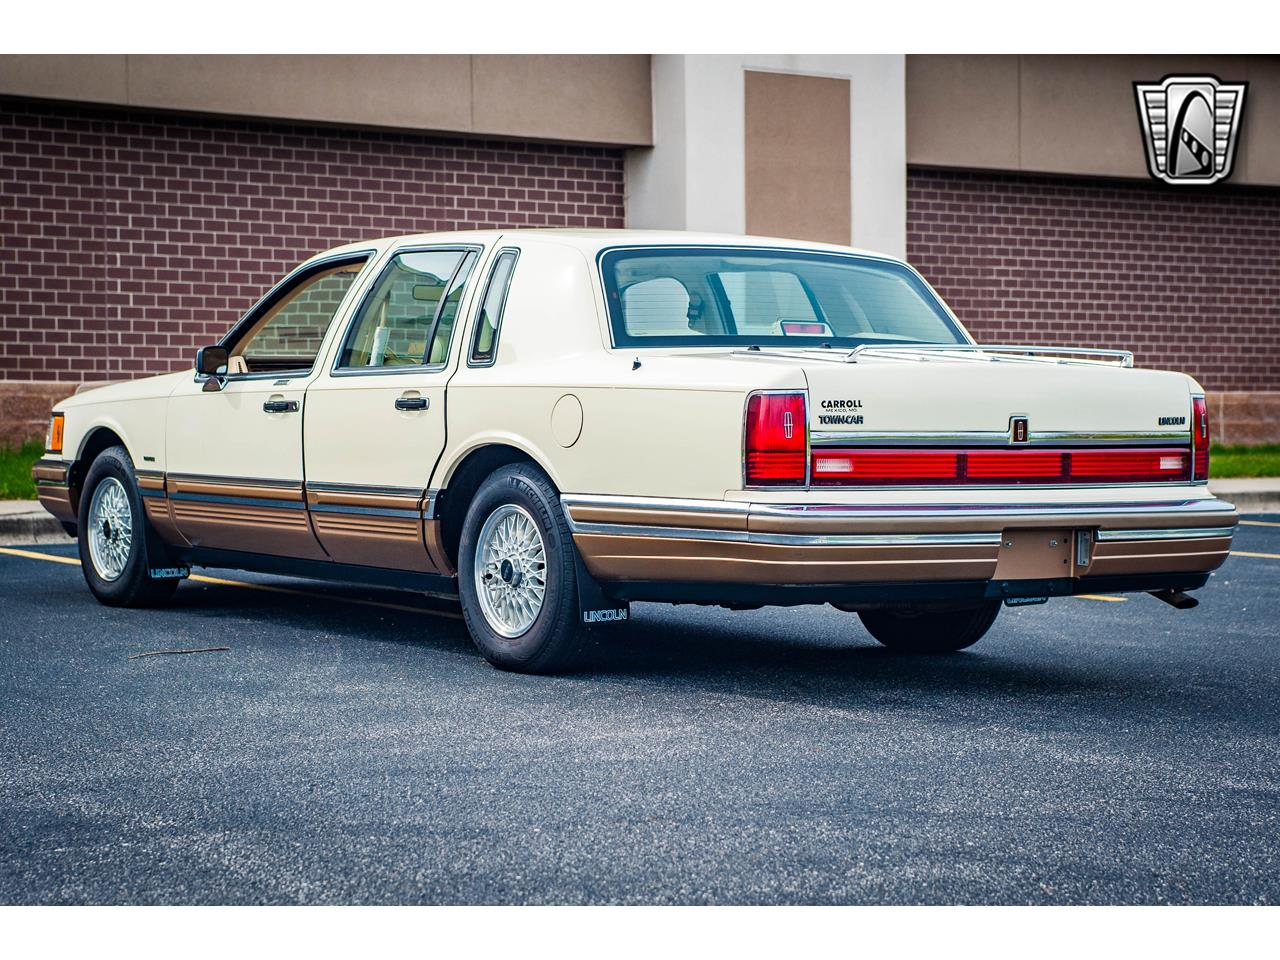 Large Picture of 1990 Town Car located in Illinois - $16,500.00 Offered by Gateway Classic Cars - St. Louis - QB8G